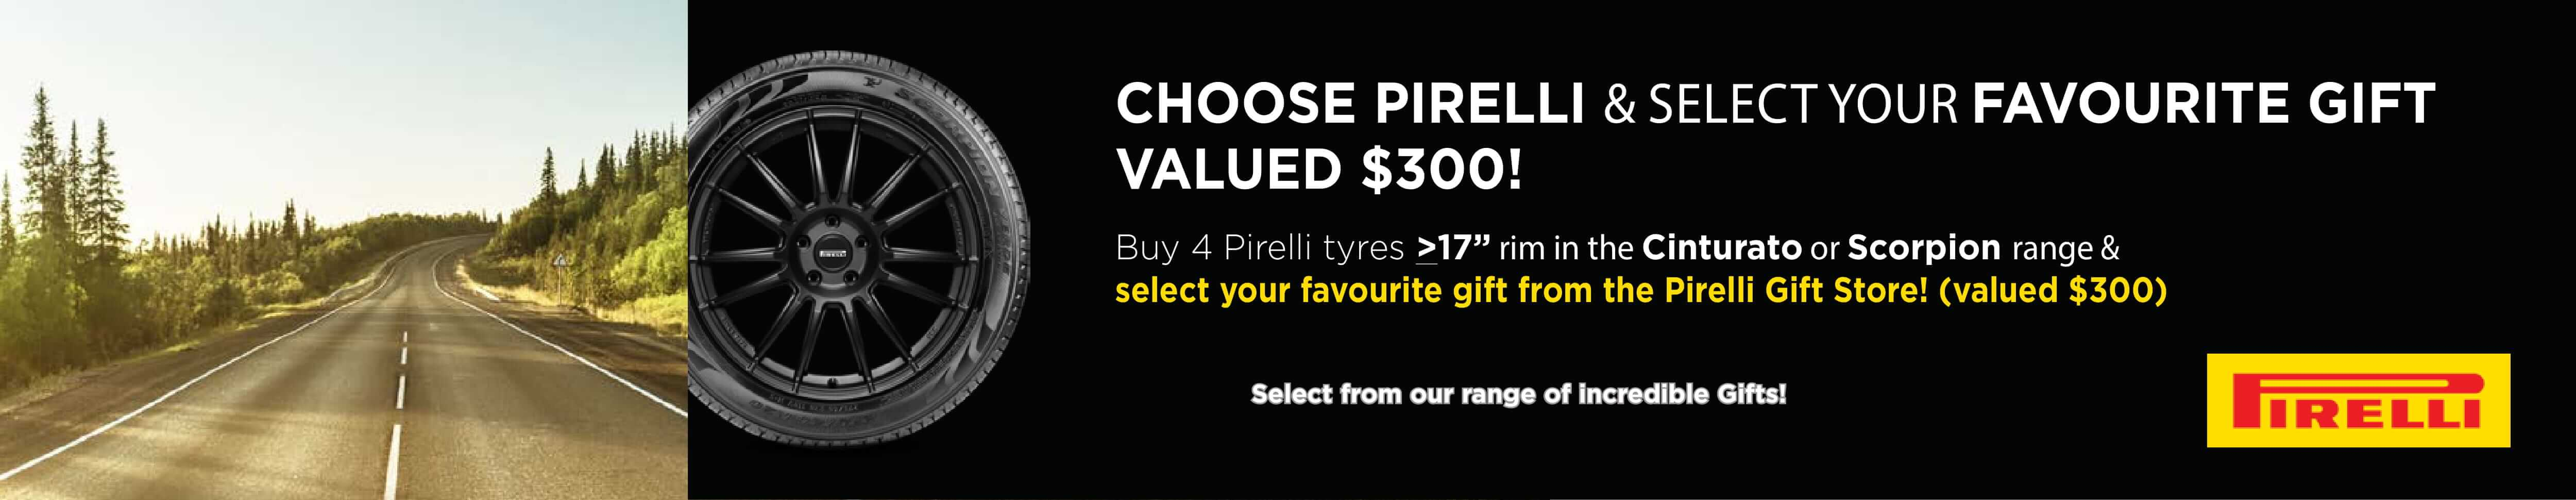 Buy 4 Pirelli tyres in the Cinturato or Scorpion range and select your favourite gift from the Pirelli Gift Store!